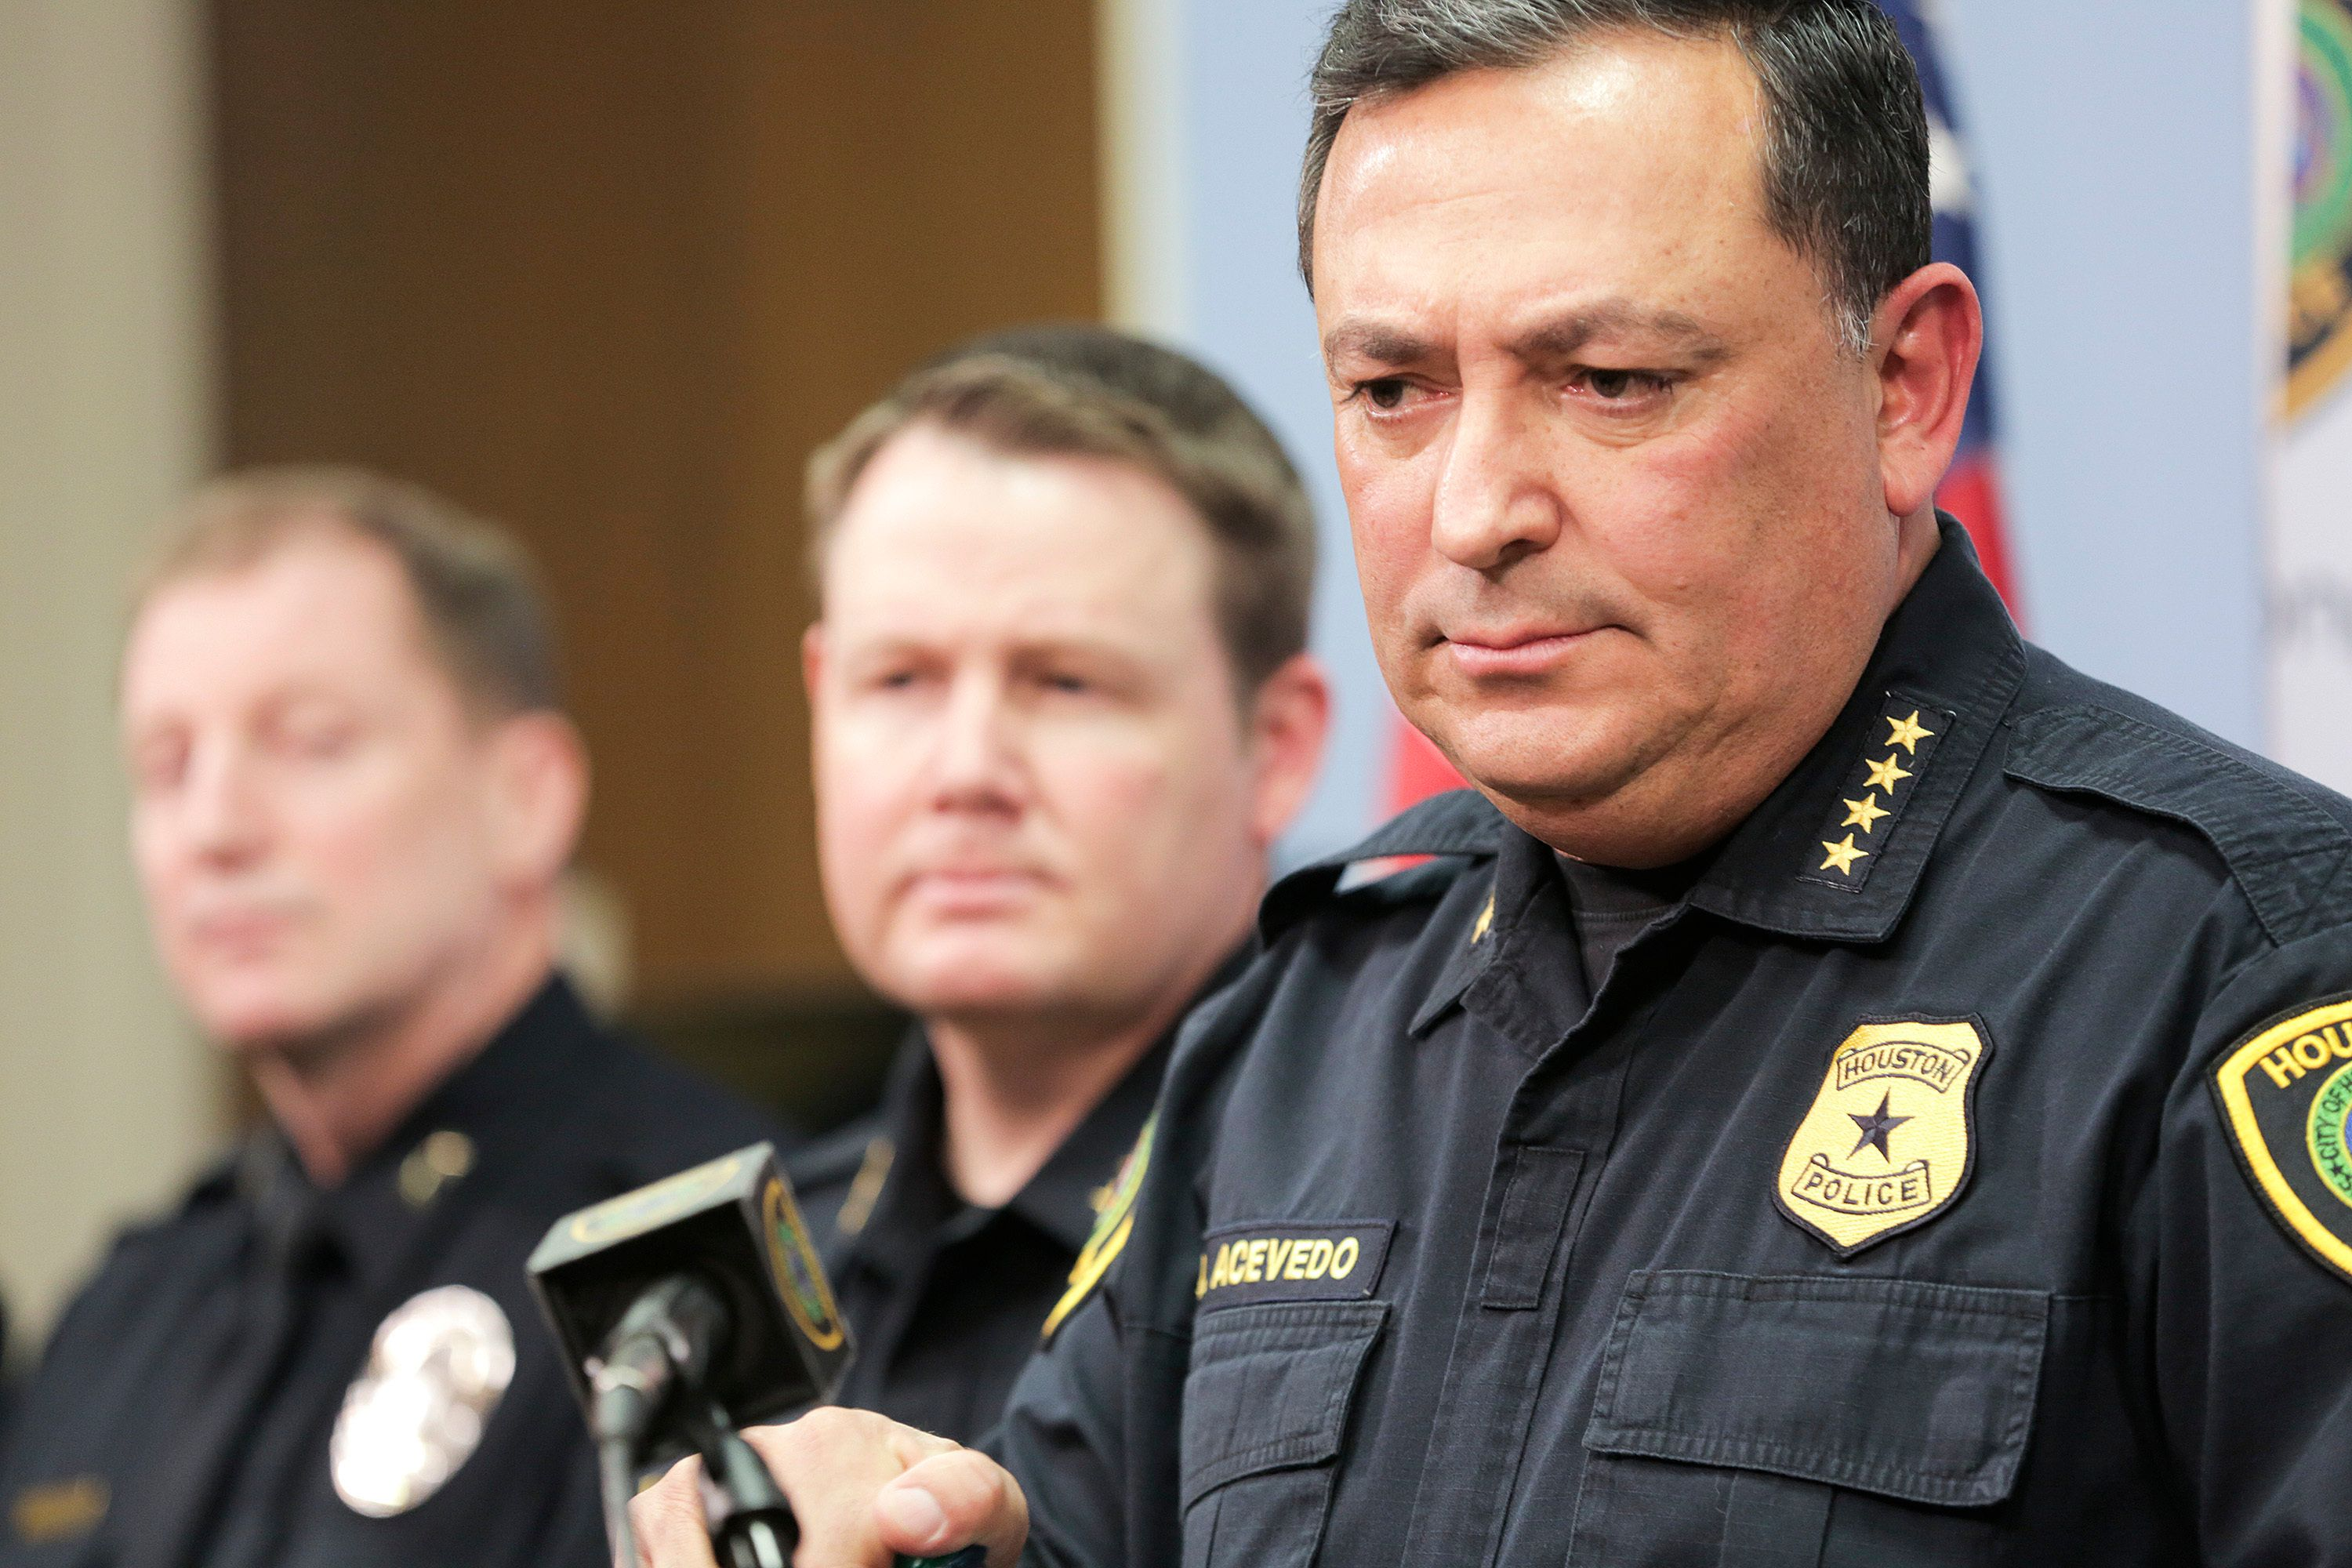 Read: Police Chief: Officer Lied In Affidavit Before Deadly Houston Drug Raid